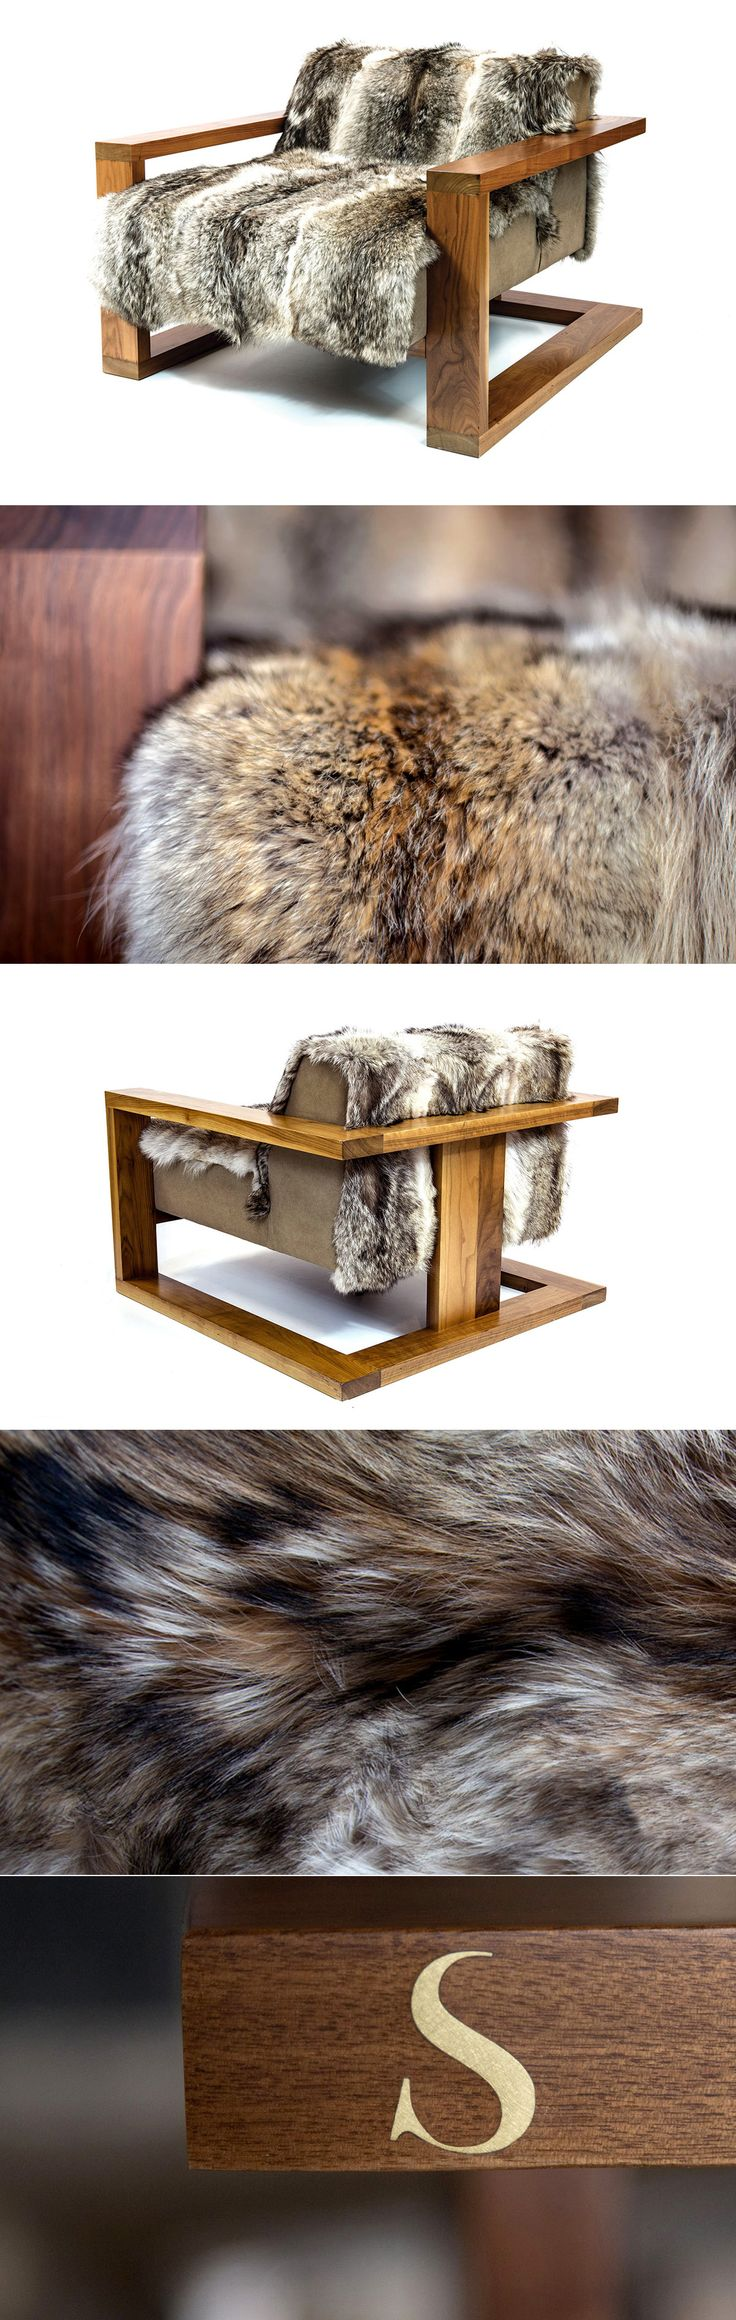 SENTIENT Caribou Lounge http://www.sentientfurniture.com/sentient-caribou-lounge An original design statement from SENTIENT combining luxurious fur with American black walnut. The Caribou lounge chair uses Coyote fur which is soft and deep and has a wide variation of colors and tones. The structure floats in a solid American black walnut frame which contrasts assuredly with the irregular shapes and variations of the fur. It is an iconic piece of furniture for use any any setting.